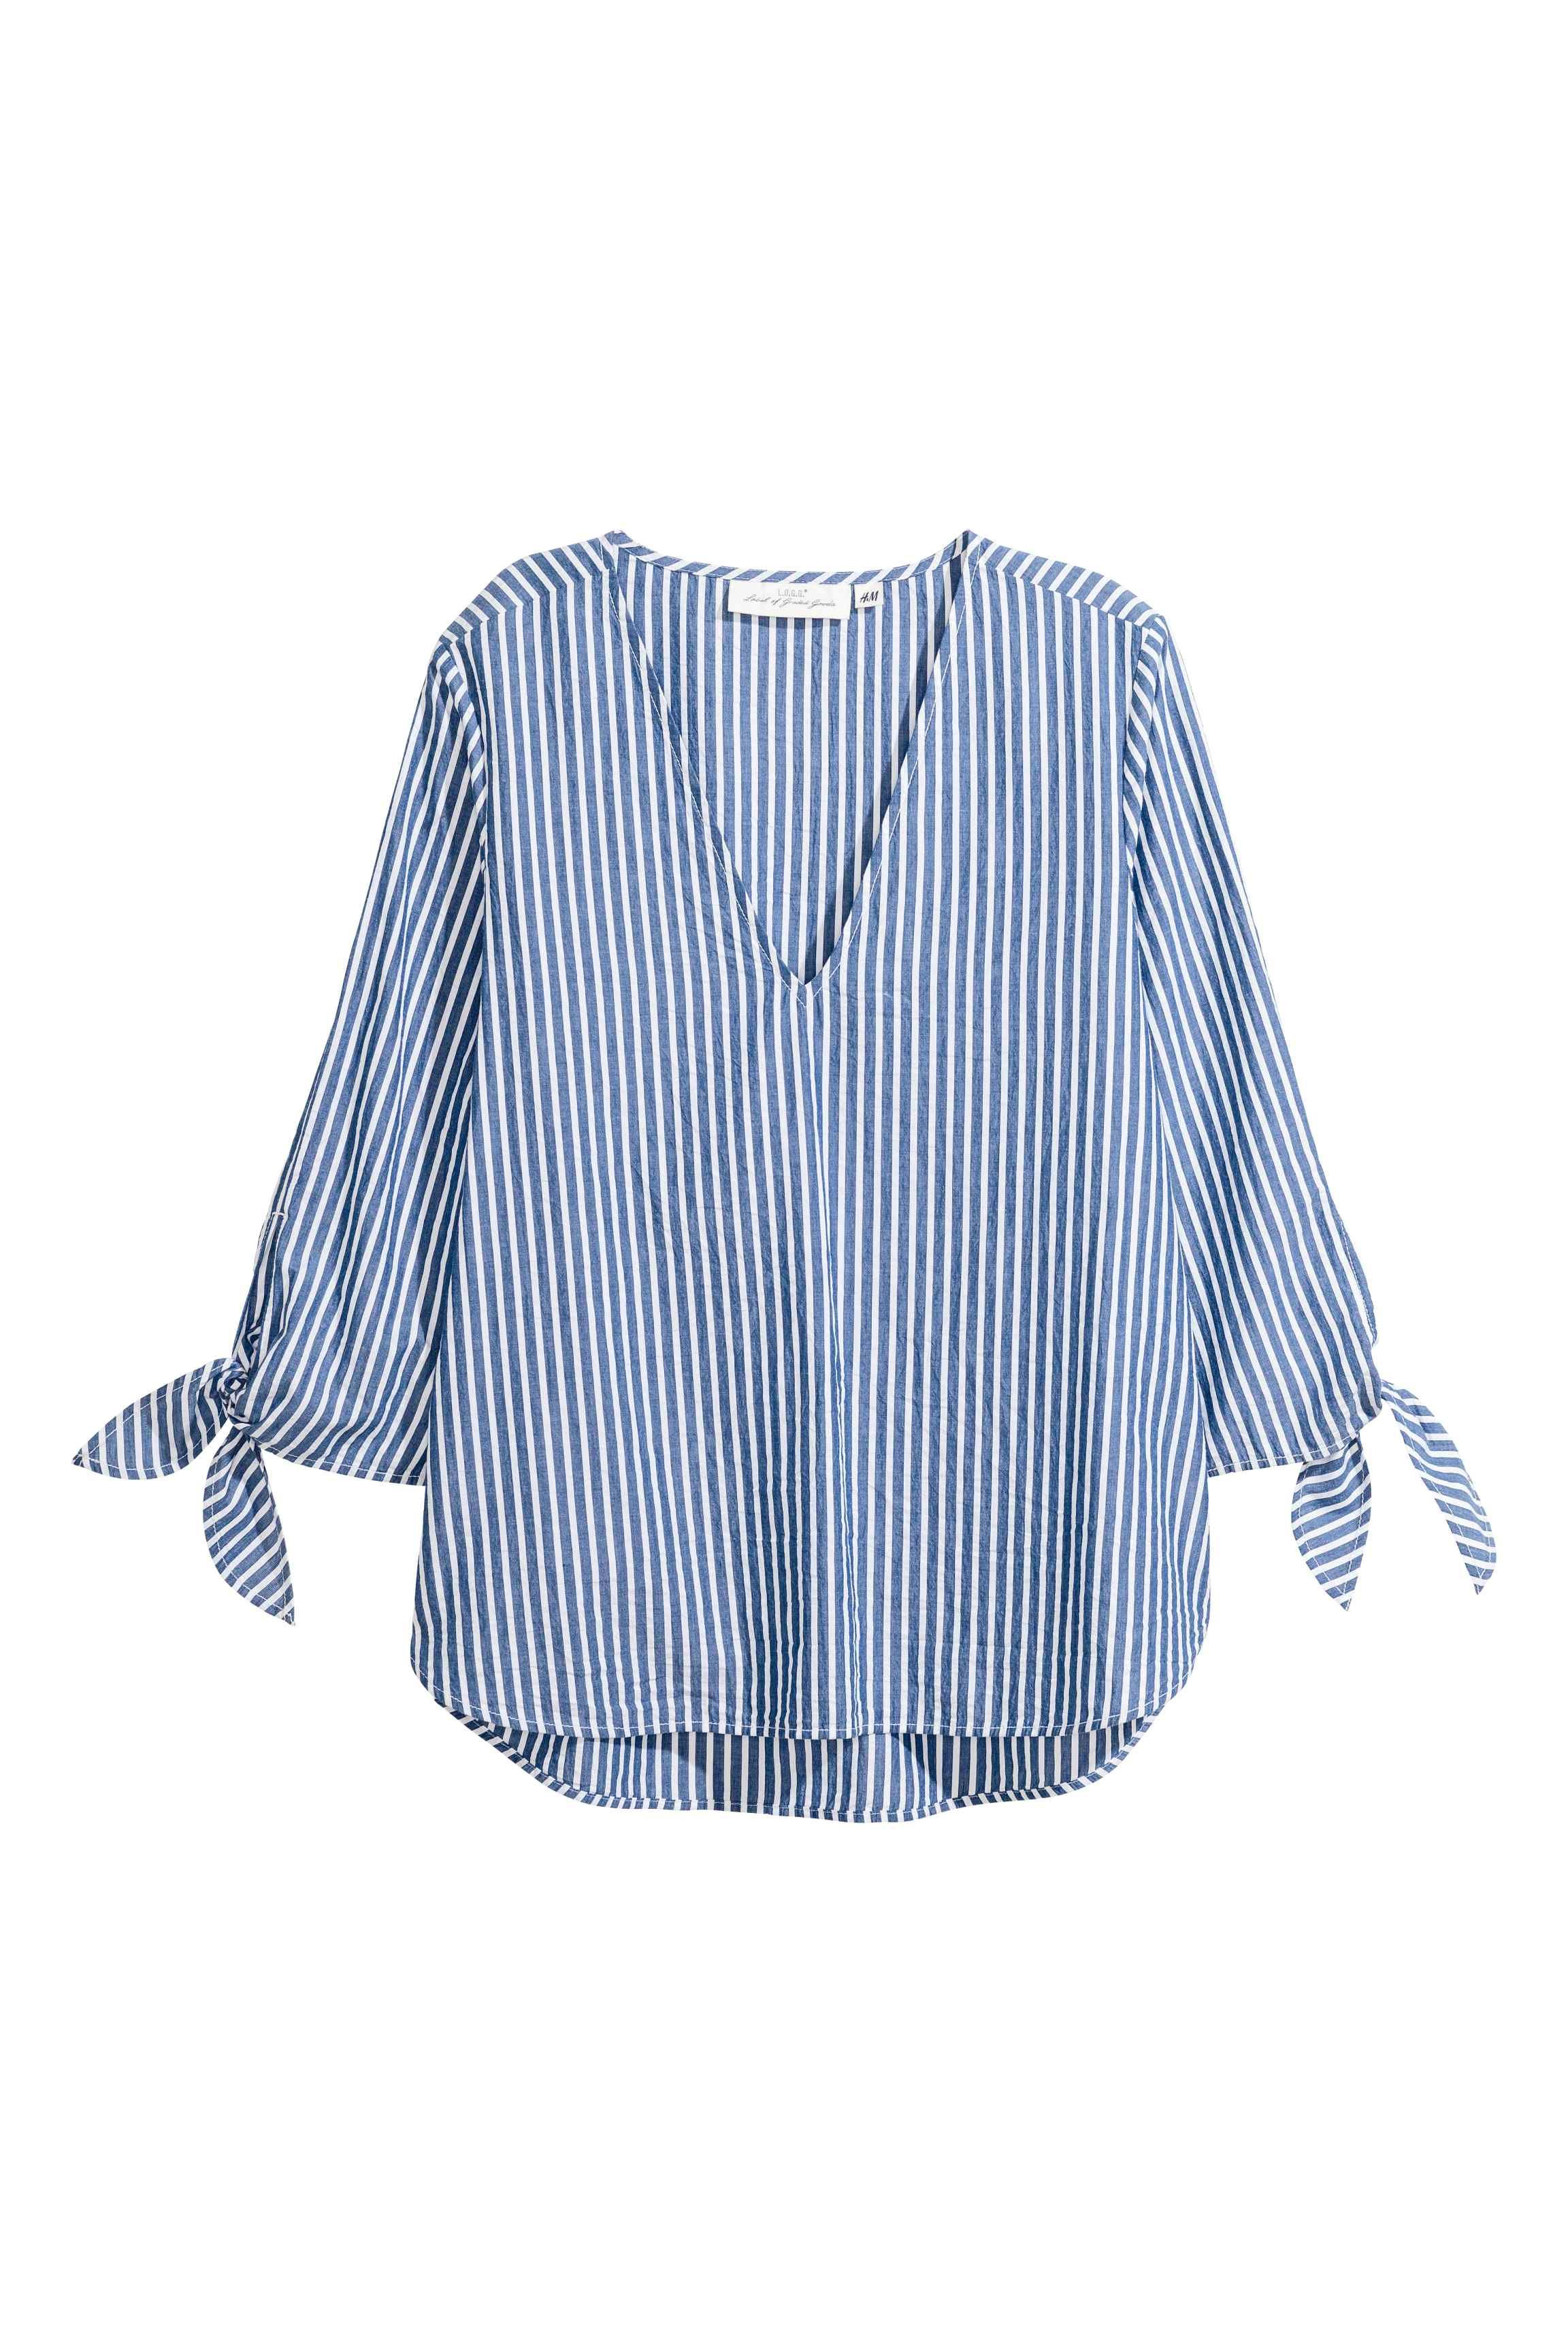 New women/'s H/&M lin casual blanc chemise à manches 3//4 taille plus